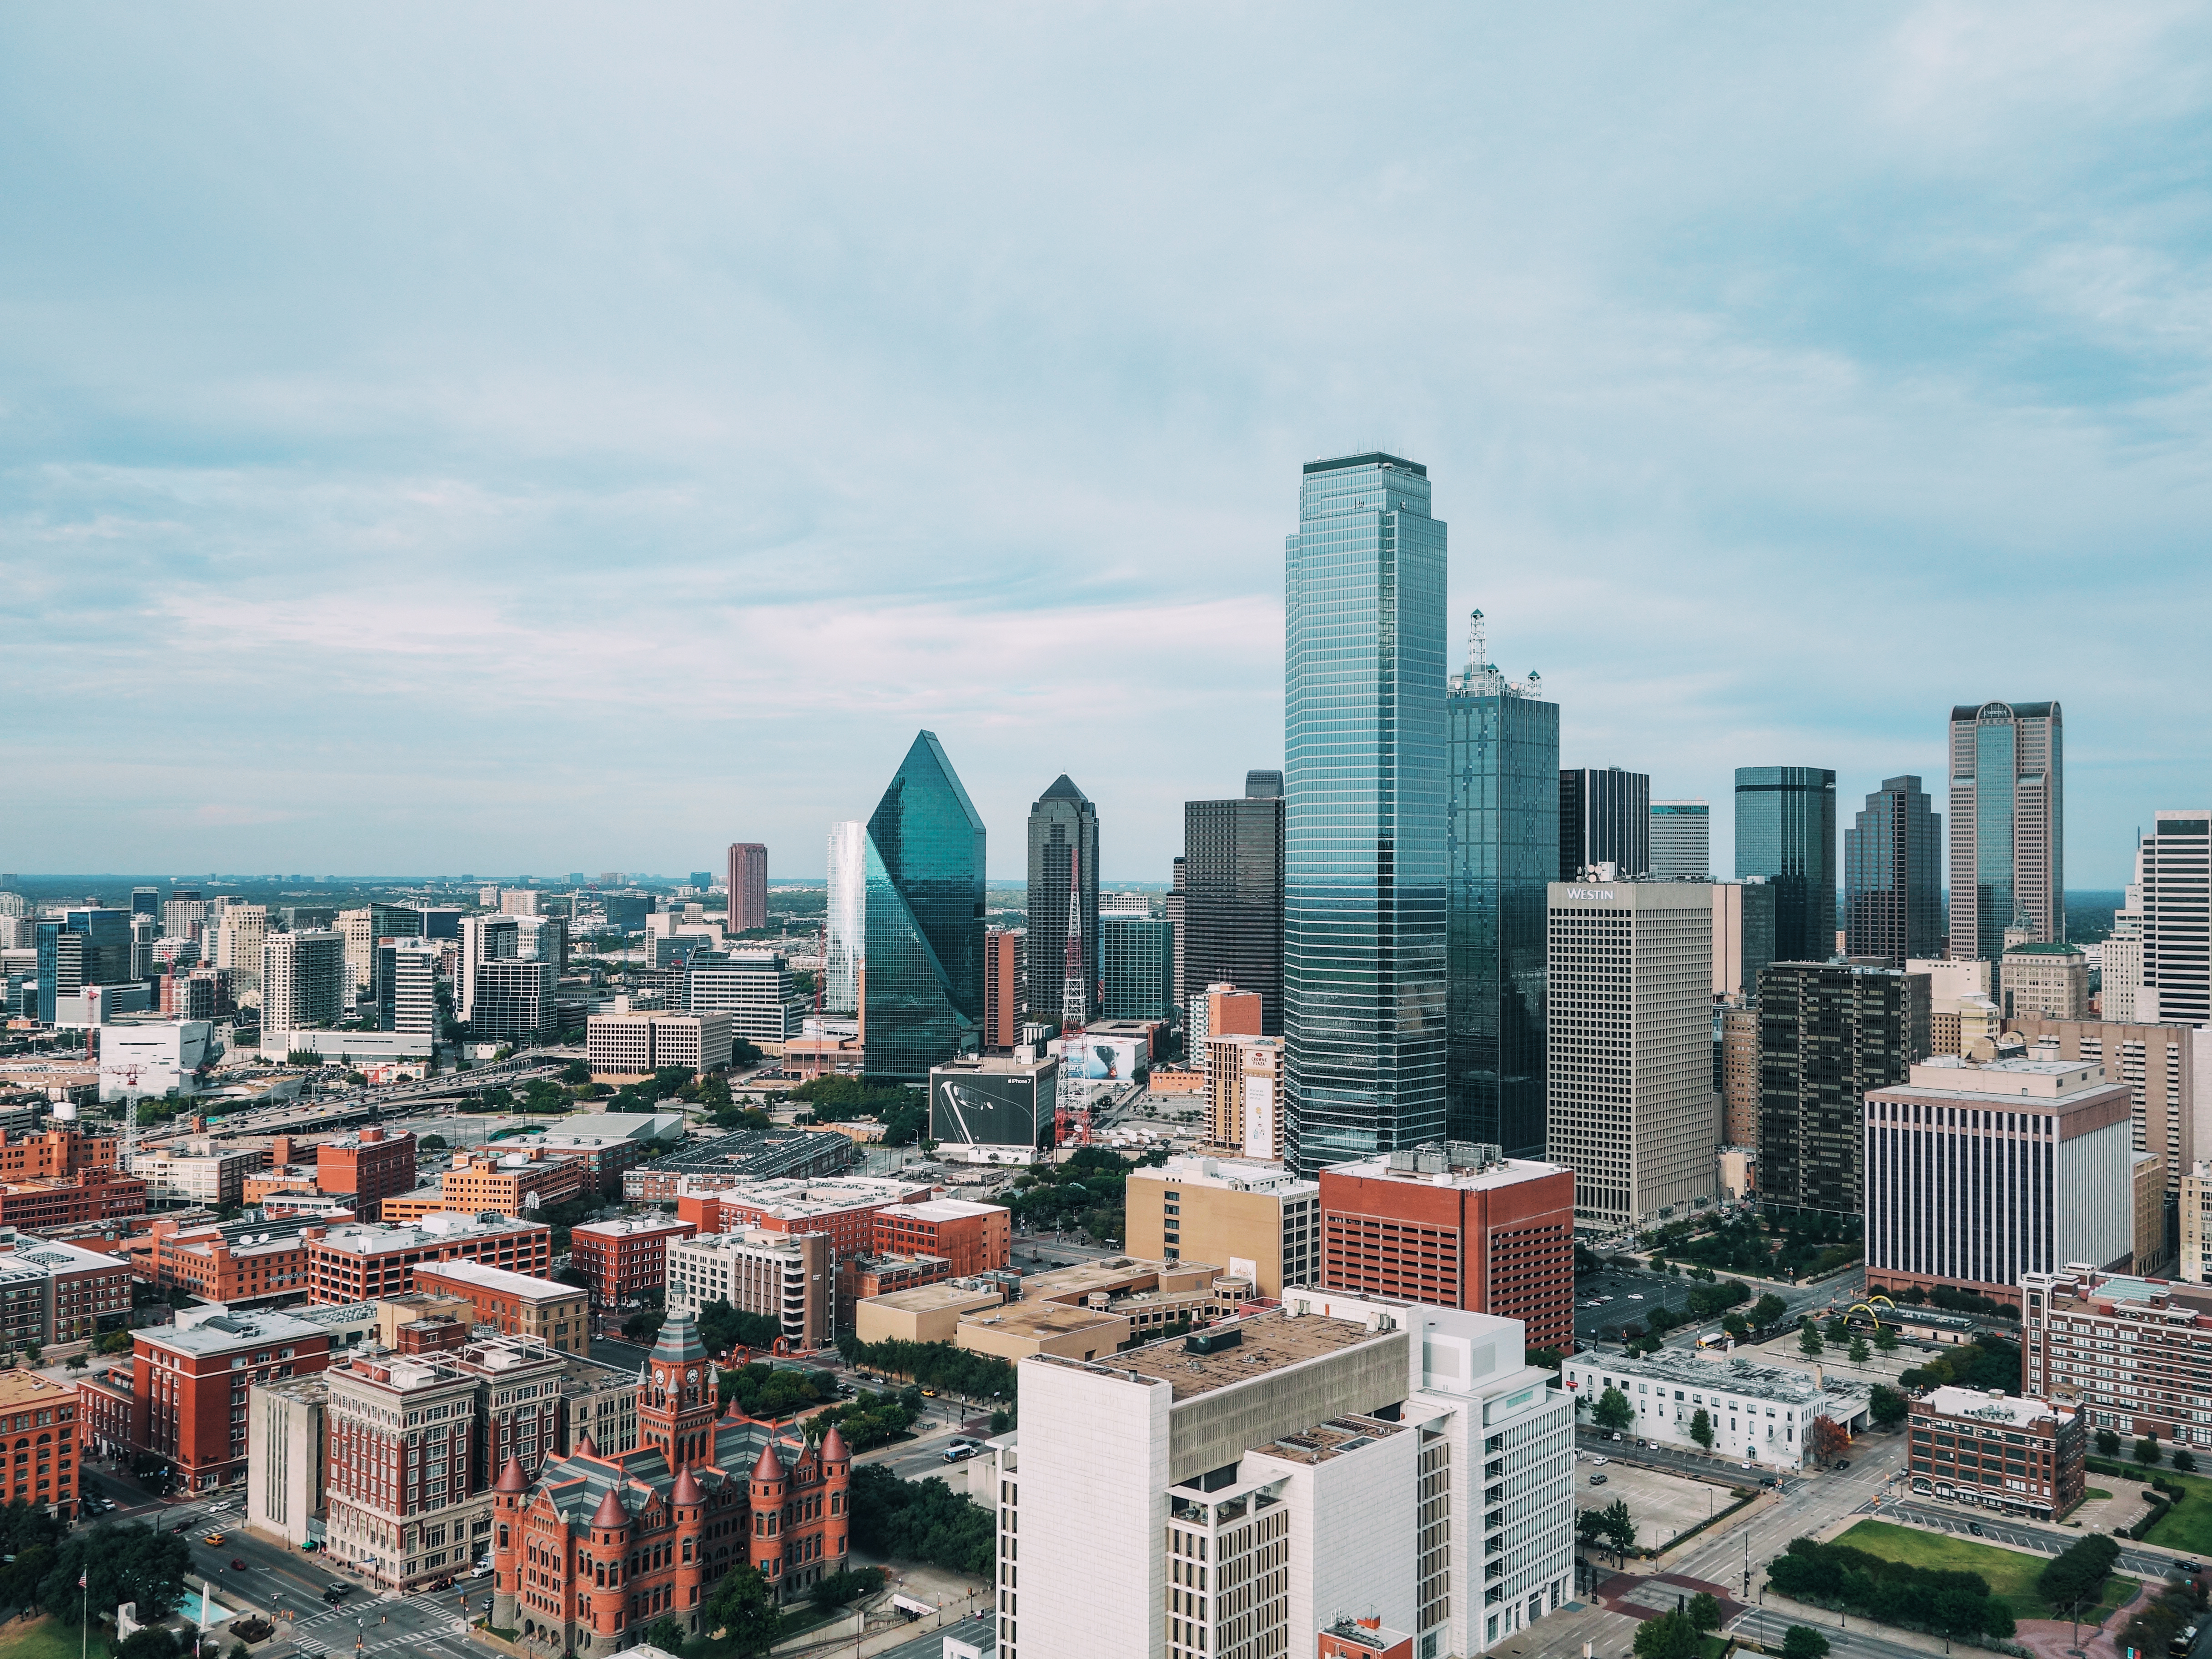 Getting Back To Work After COVID-19: How Can Businesses Reopening Across North Texas Ensure The Health And Safety Of Their Employees?